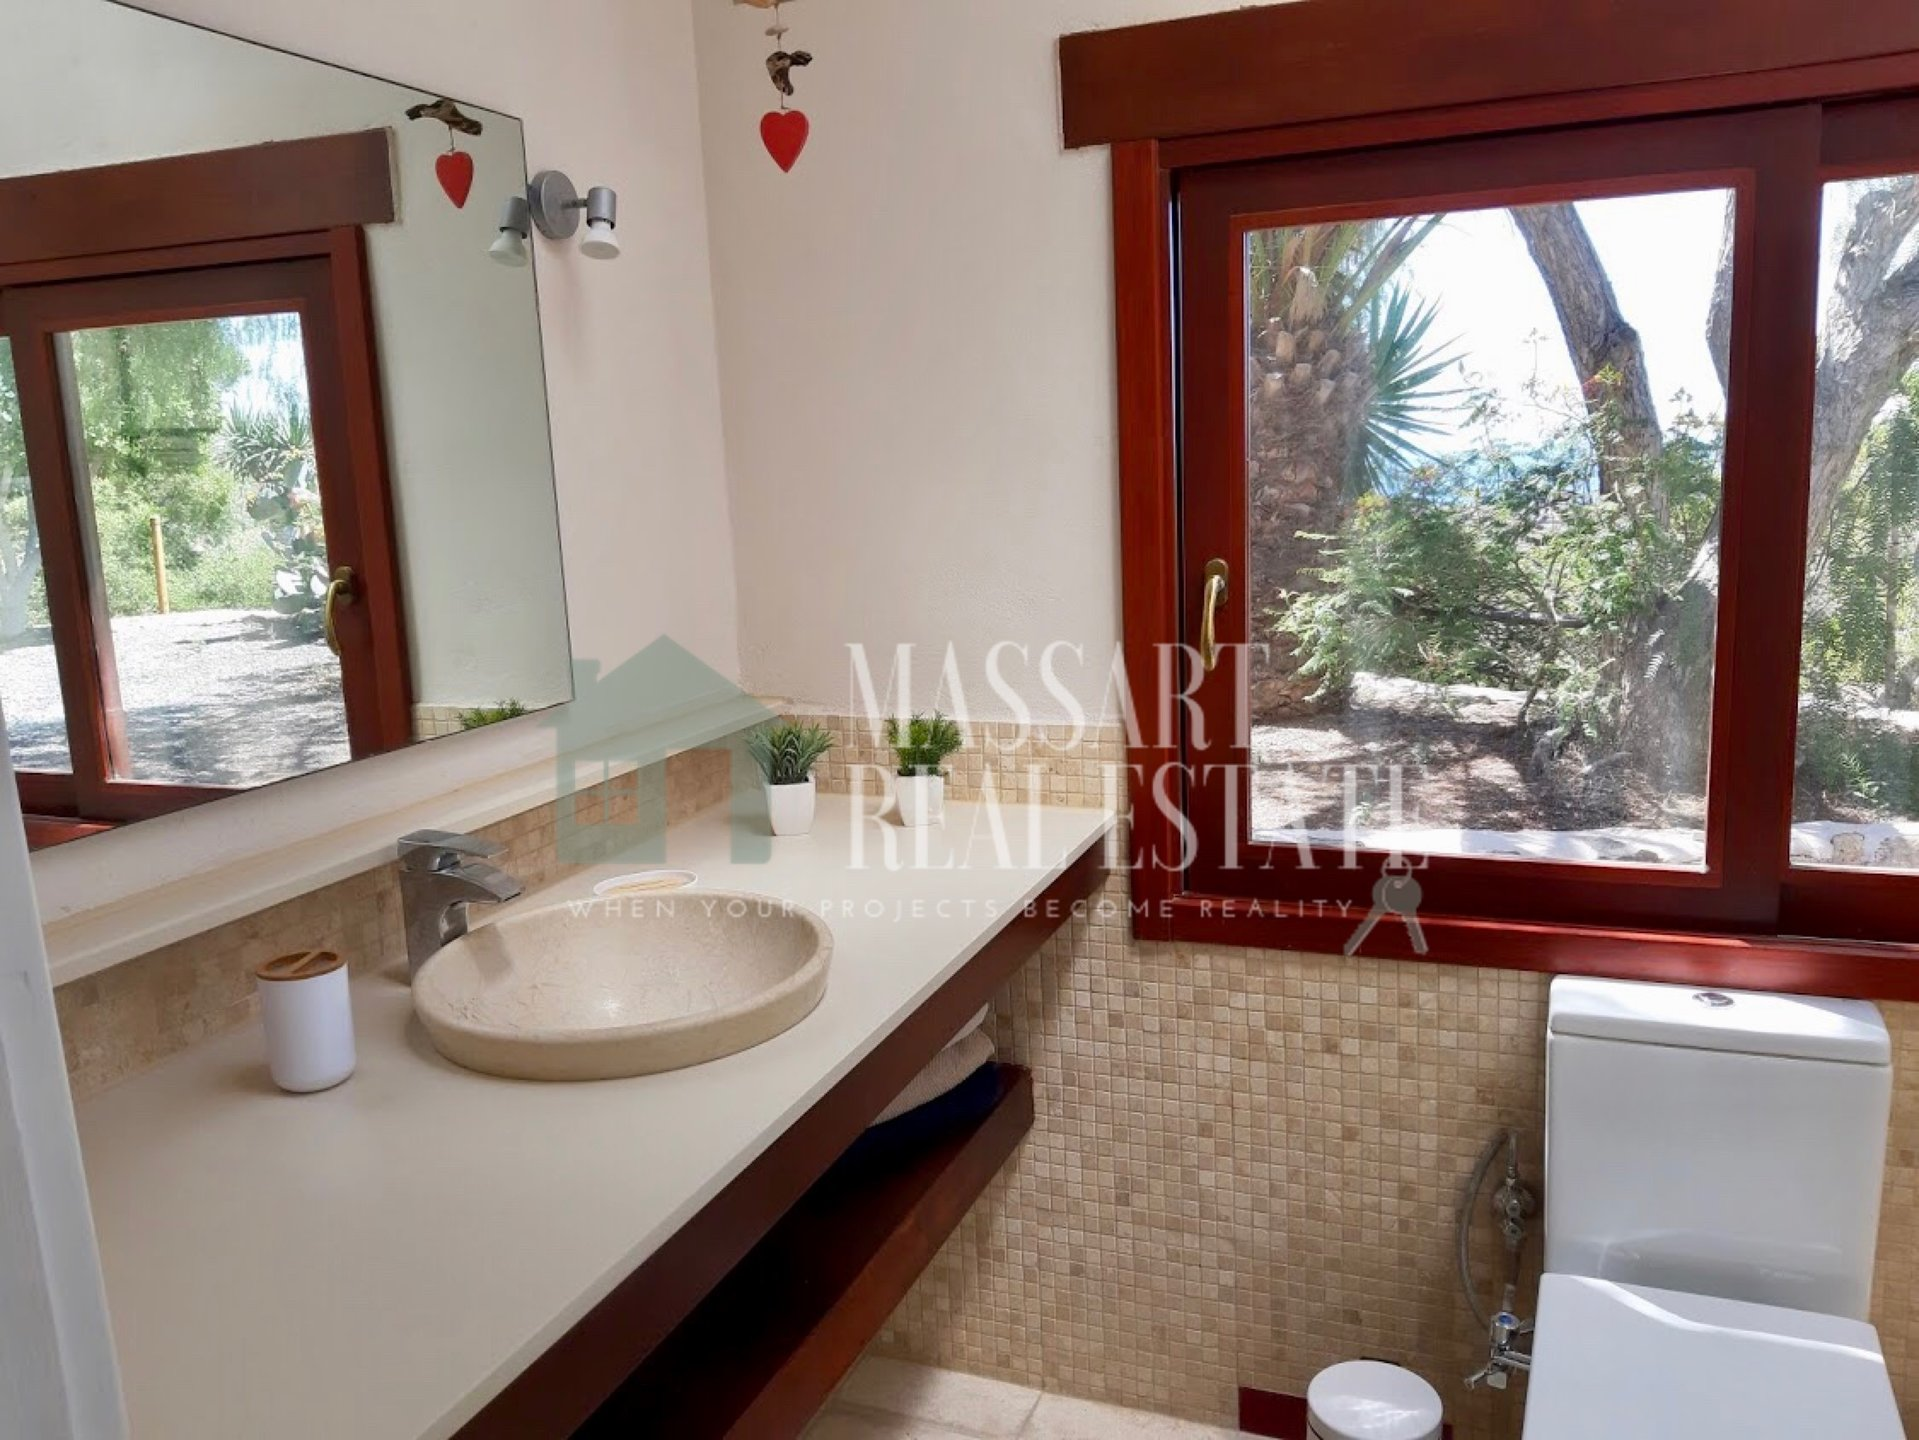 For rent in San Isidro, 220 m2 house located in a large rustic environment.